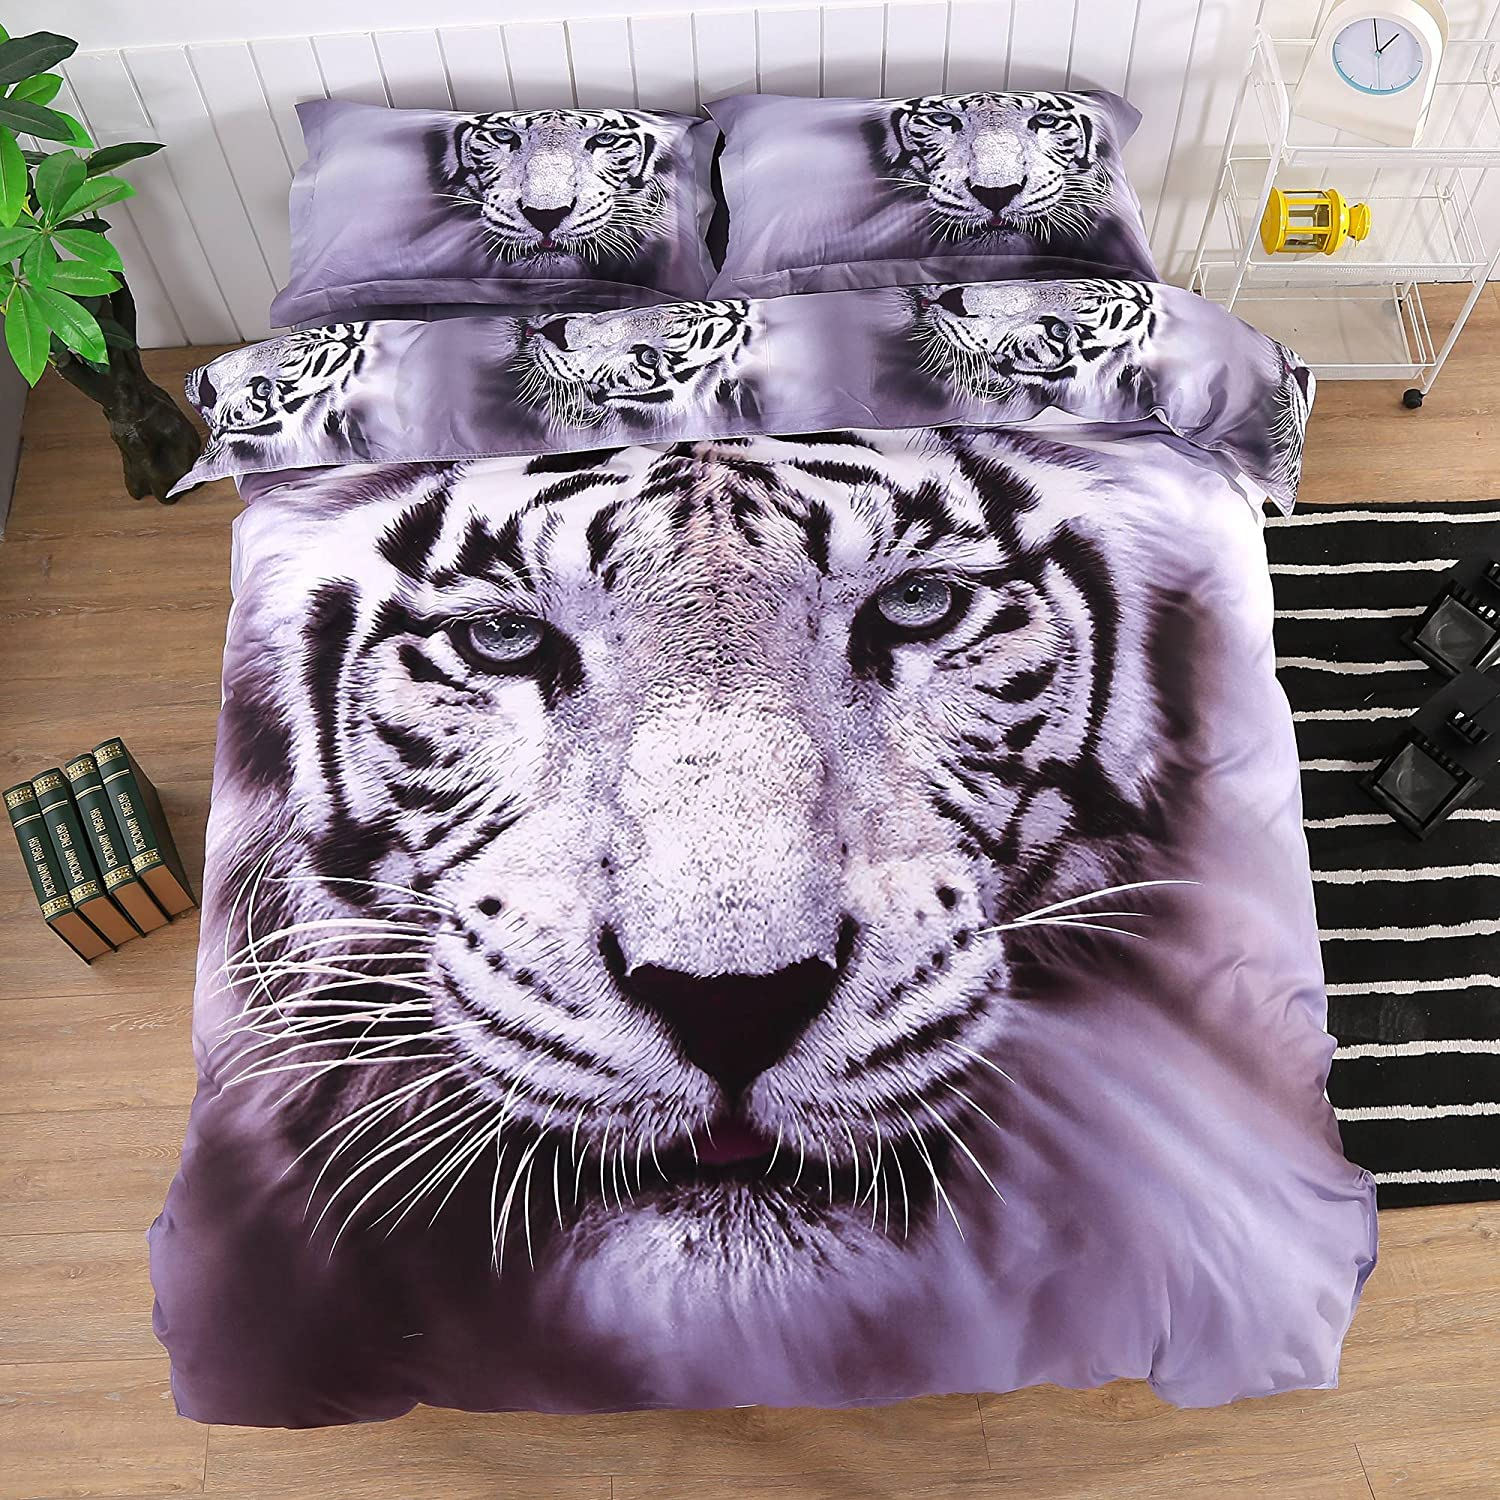 Ammybeddings 4 PCs Cool Tiger Comforter Cover Set Soft Stylish Bedroom Decor Bedding Queen 1 Flat Sheet 2 Pillow Shams and 1 White Tiger Duvet Cover ( No Comforter,No Fitted Sheet )